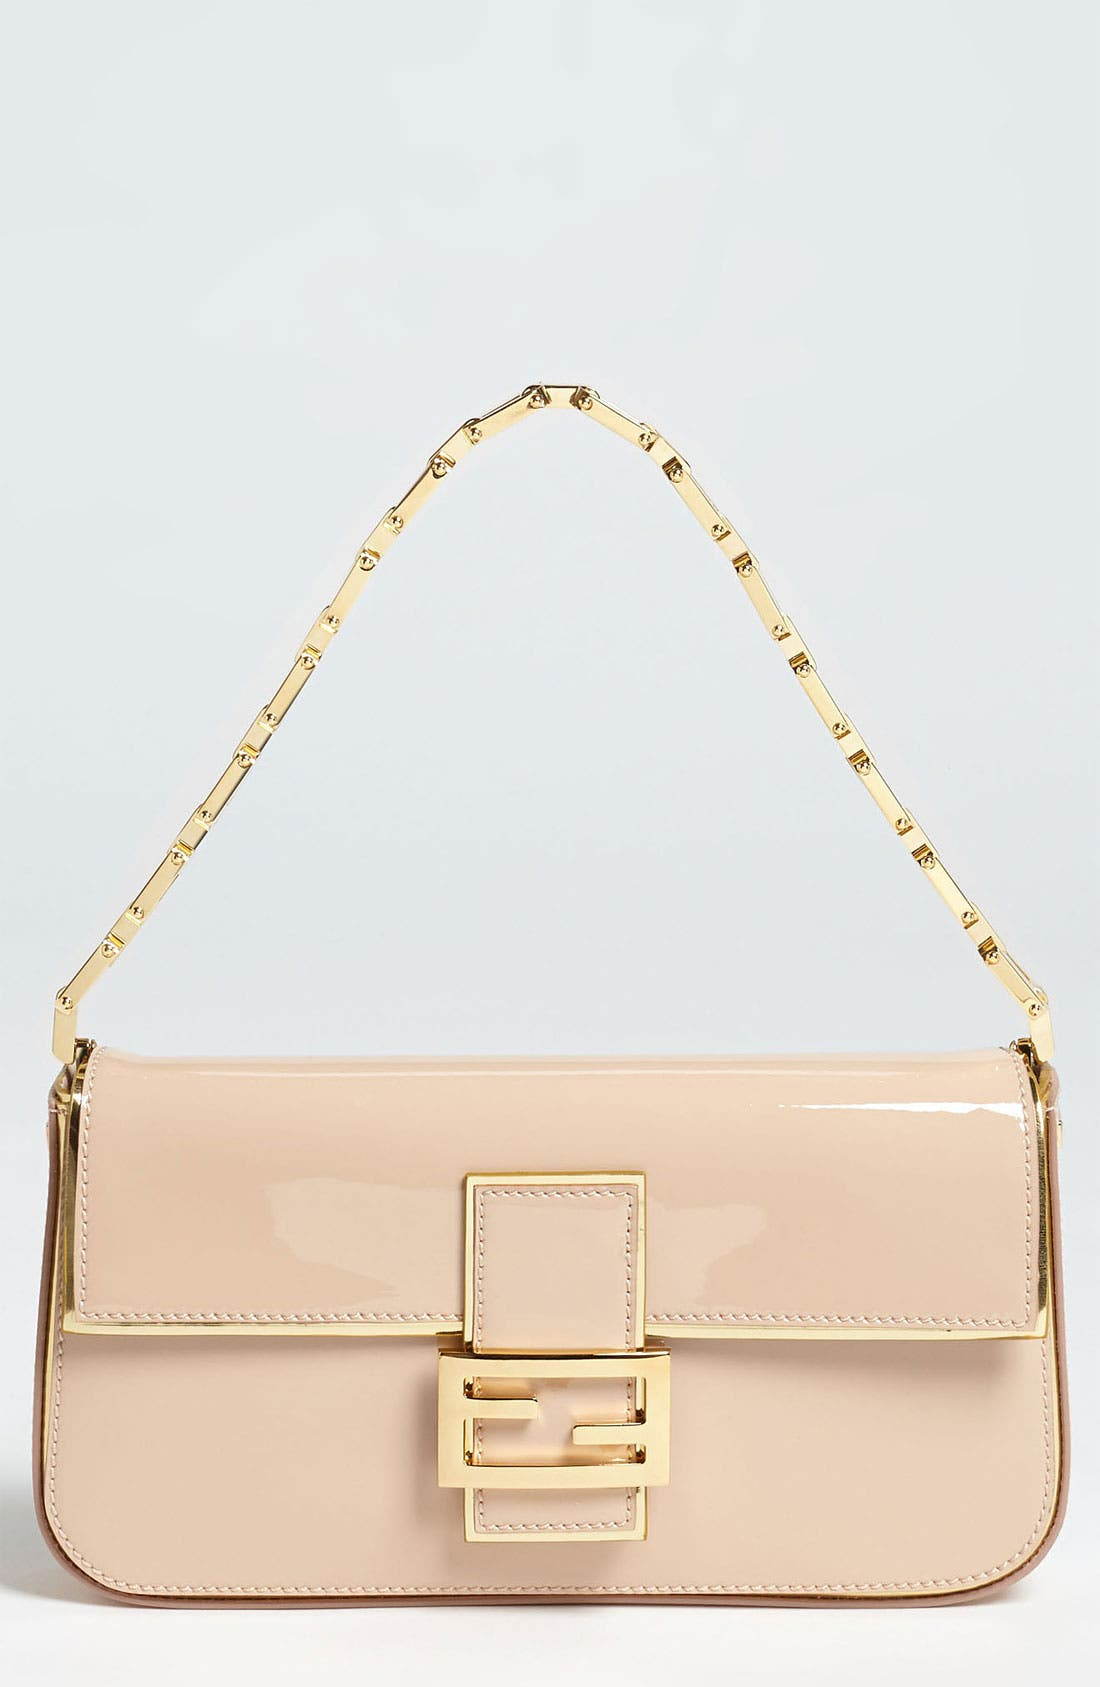 Alternate Image 1 Selected - Fendi Patent Leather Baguette